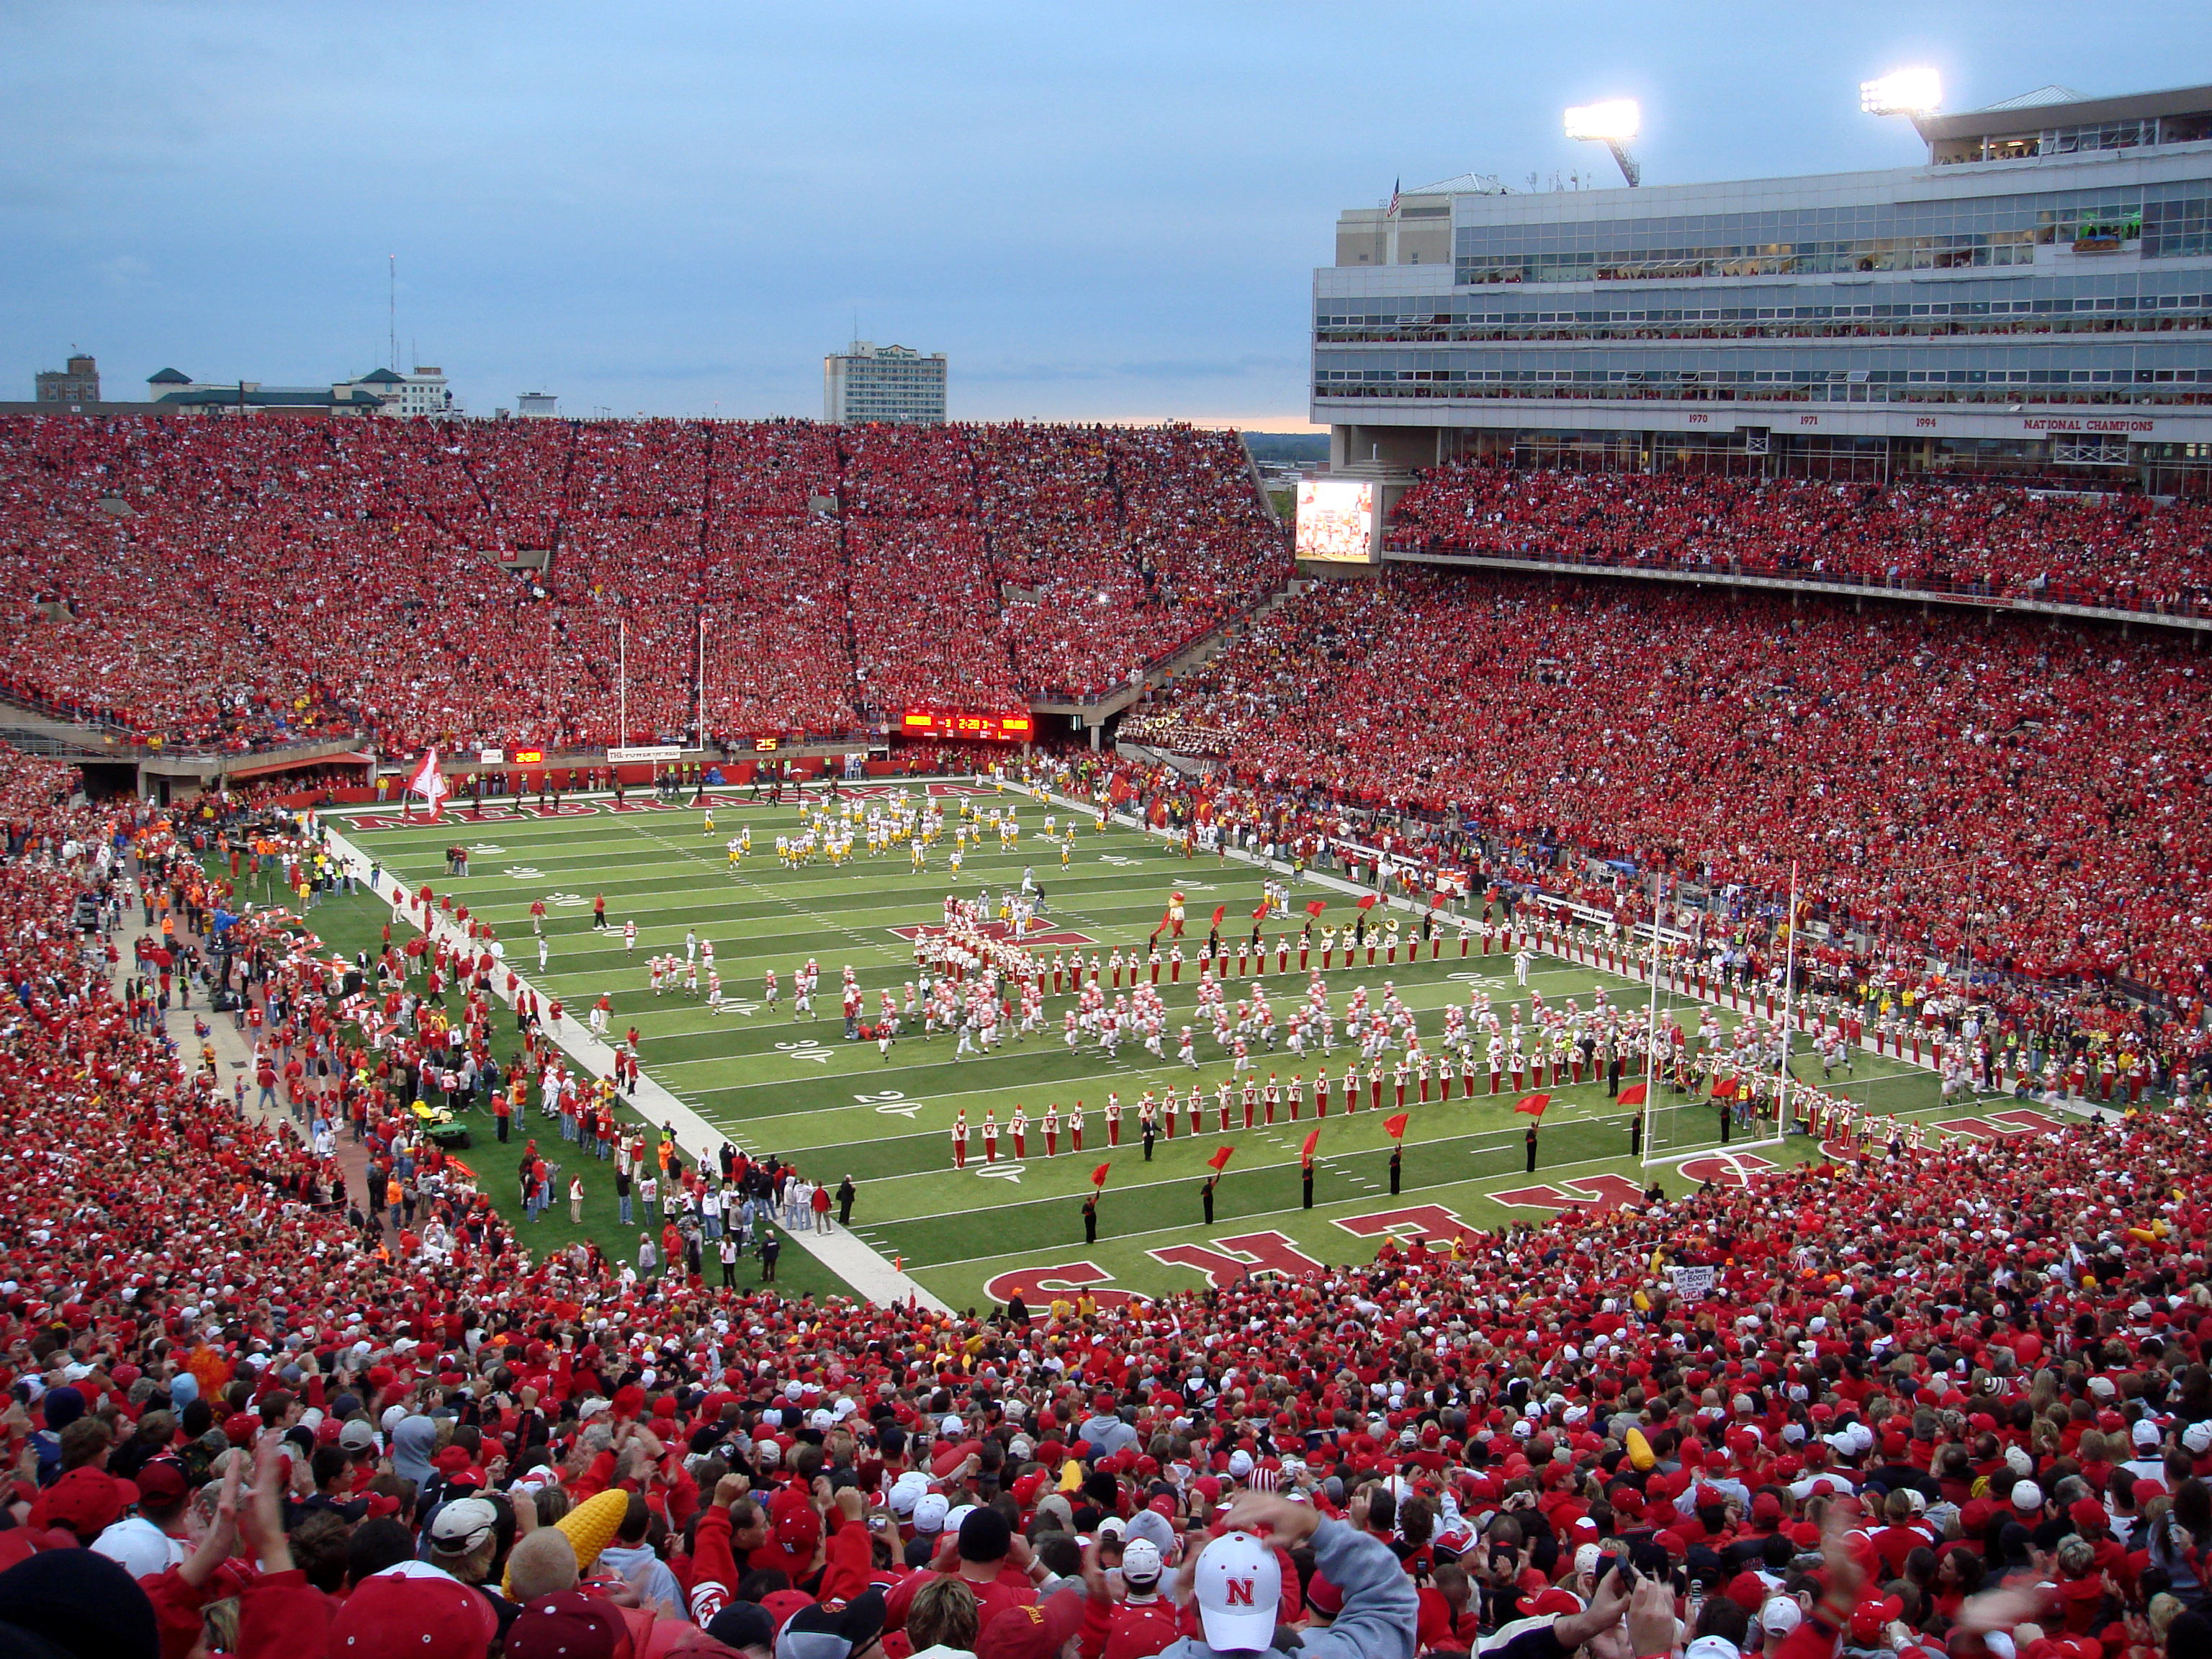 091507 USCNeb MemorialStadium nebraska football tickets seatgeek